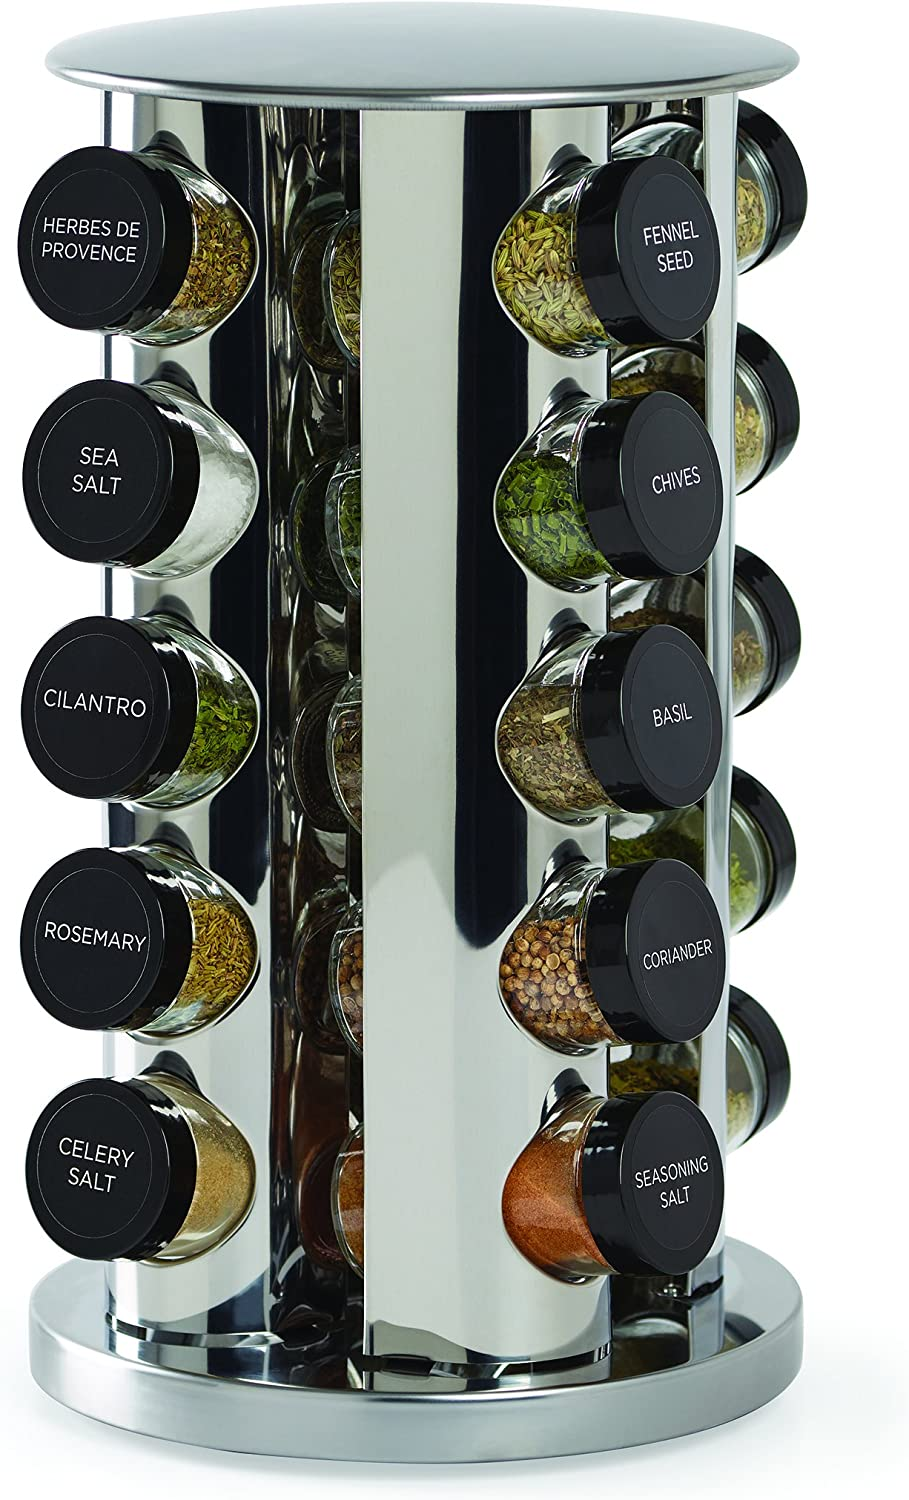 Kamenstein 30020 Revolving 20-Jar Countertop Spice Rack Tower Organizer with Free Spice Refills for 5 Years, Silver: Spice Racks: Kitchen & Dining